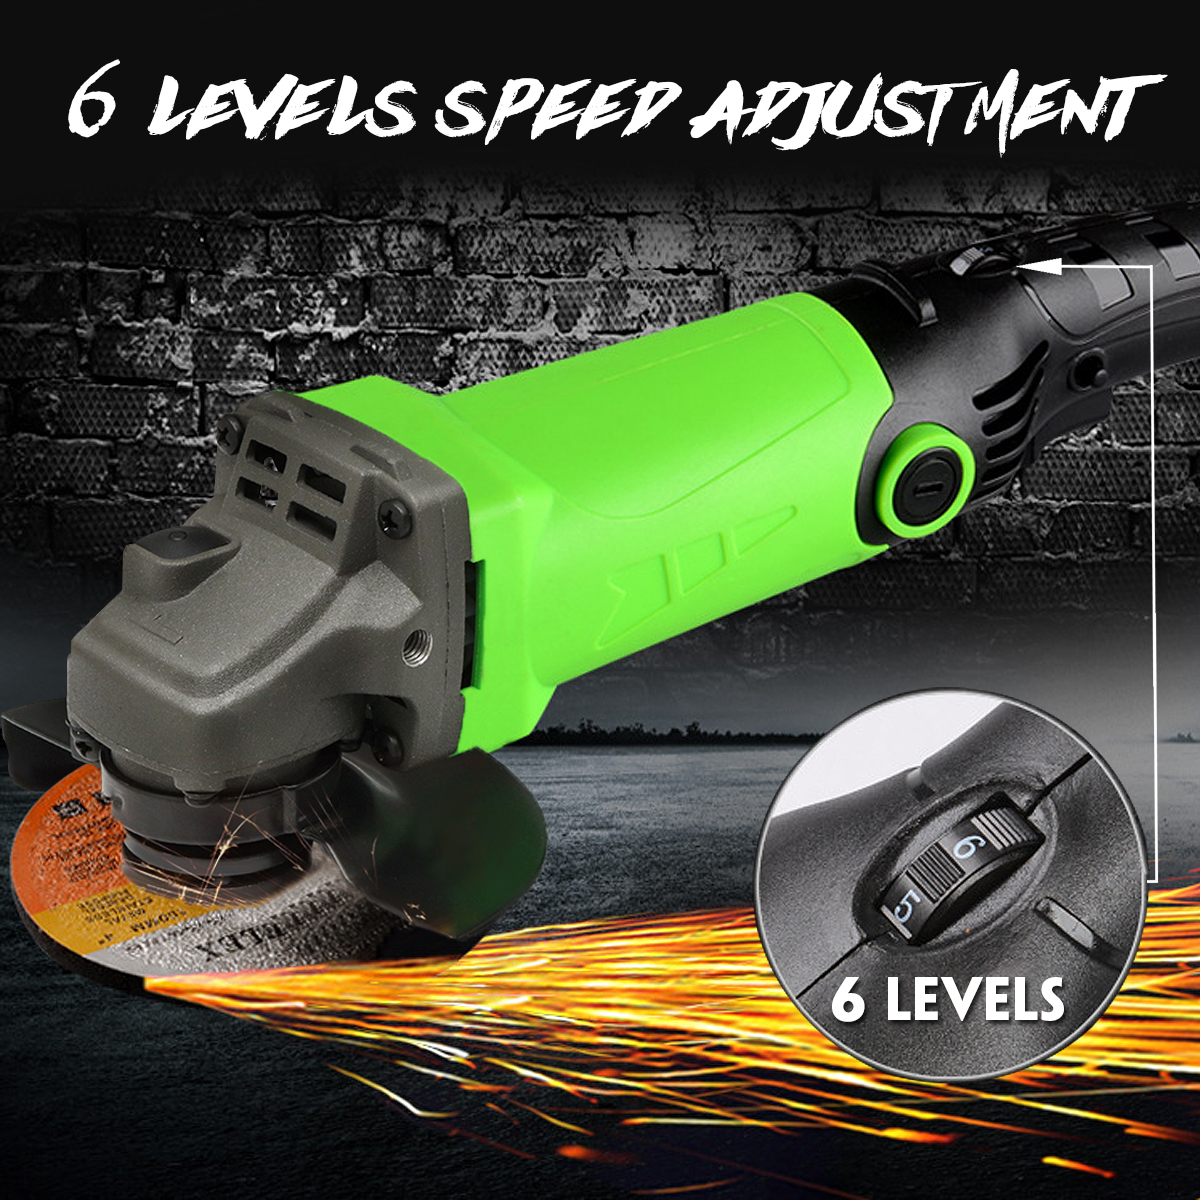 1Pcs 220V Multipurpose Angle Grinder 6 Levels Speed Adjustable Polishing Machine Grinding Drilling Tools купить недорого в Москве